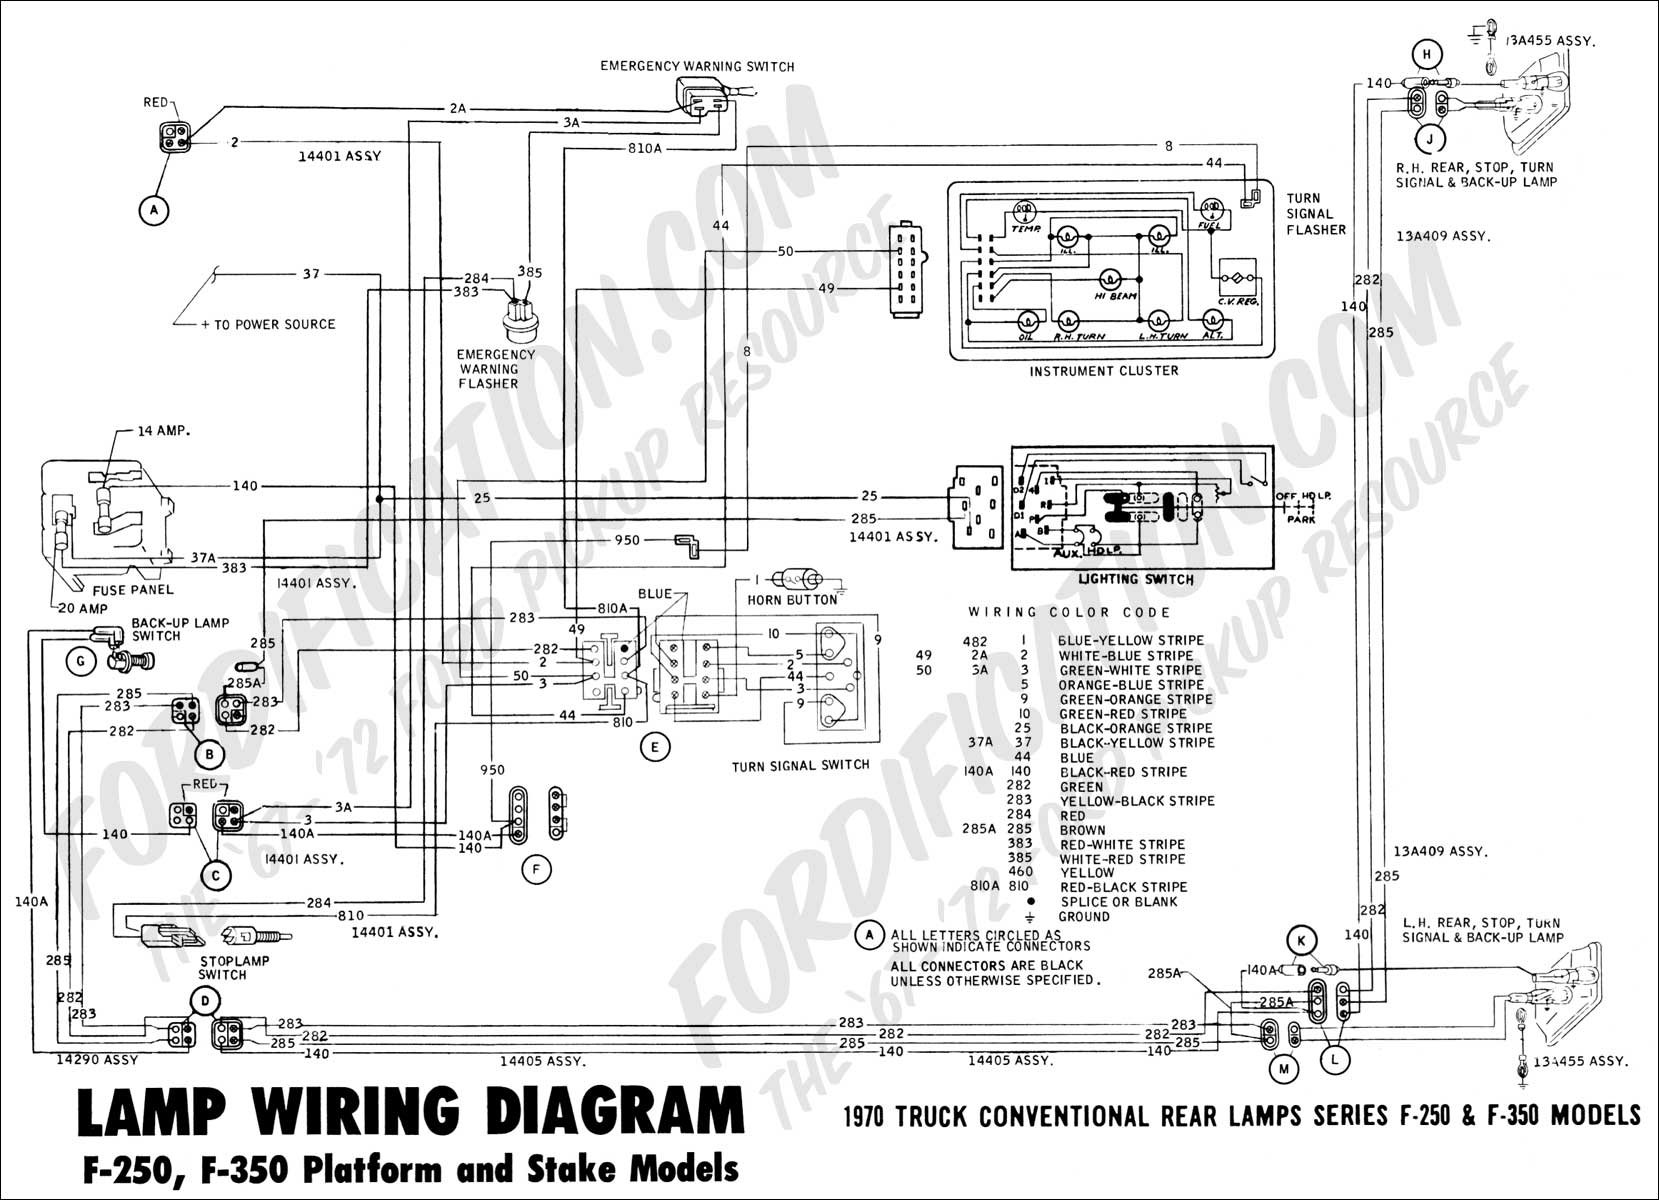 WRG-7170] For A 1994 Ford F150 Pickup Wiring Diagram on 94 ford f-150 wiring diagram, 94 ford pickup parts, 71 chevy pickup wiring diagram, 79 chevy pickup wiring diagram, 72 chevy pickup wiring diagram, 85 chevy pickup wiring diagram, 74 ford pickup wiring diagram, 94 ford bronco wiring diagram, 91 toyota pickup wiring diagram, 94 ford tempo wiring diagram, 1990 ford pickup wiring diagram, 94 nissan pickup wiring diagram,